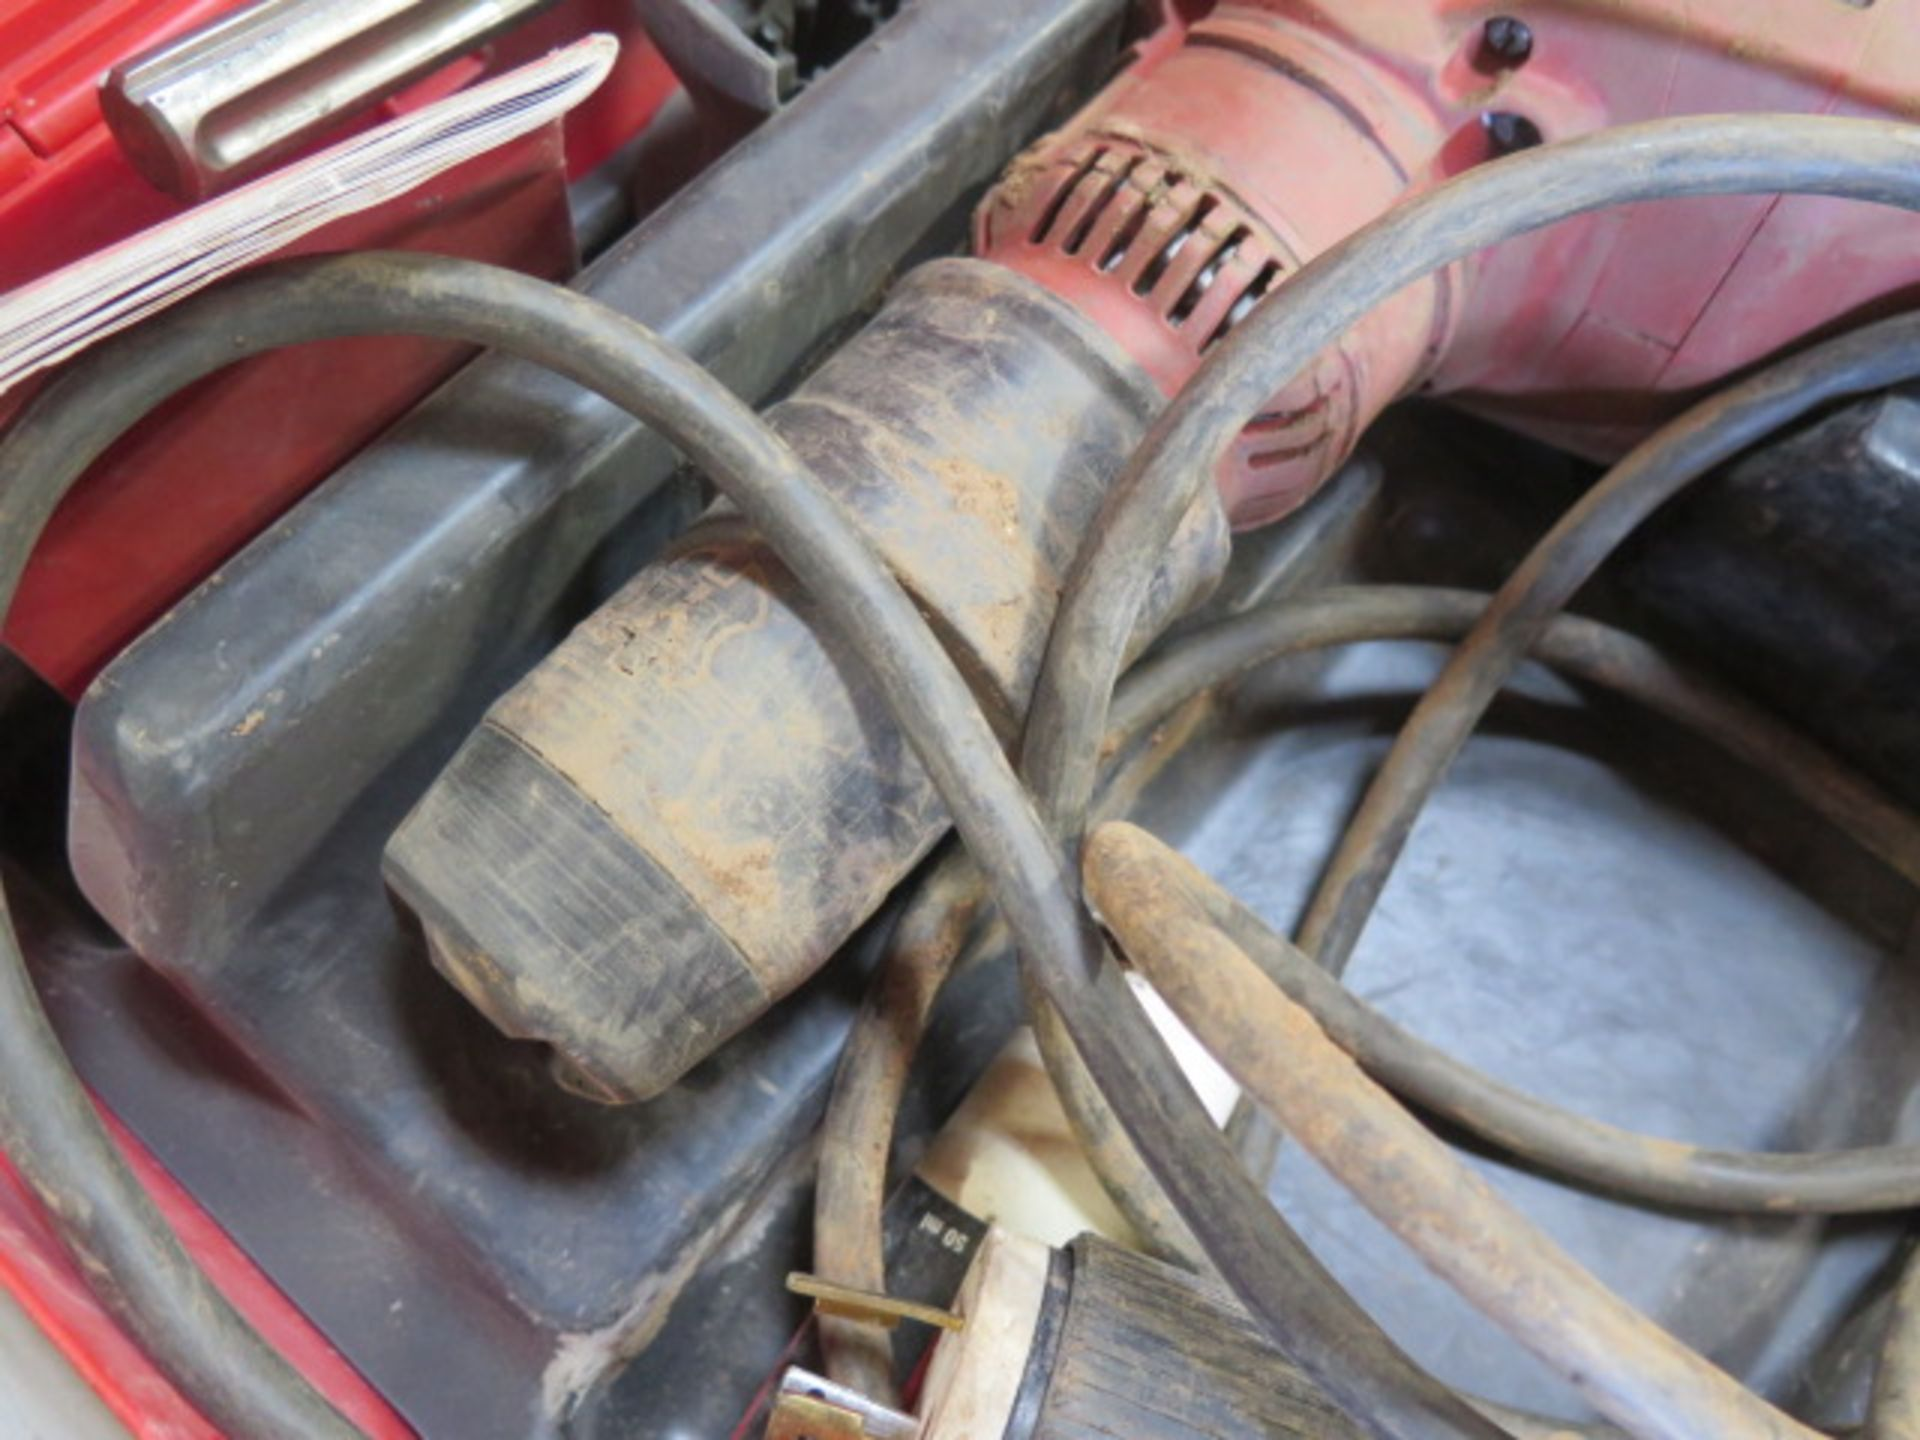 Hilti TE 50-AVR Hammer Drill (SOLD AS-IS - NO WARRANTY) - Image 3 of 6